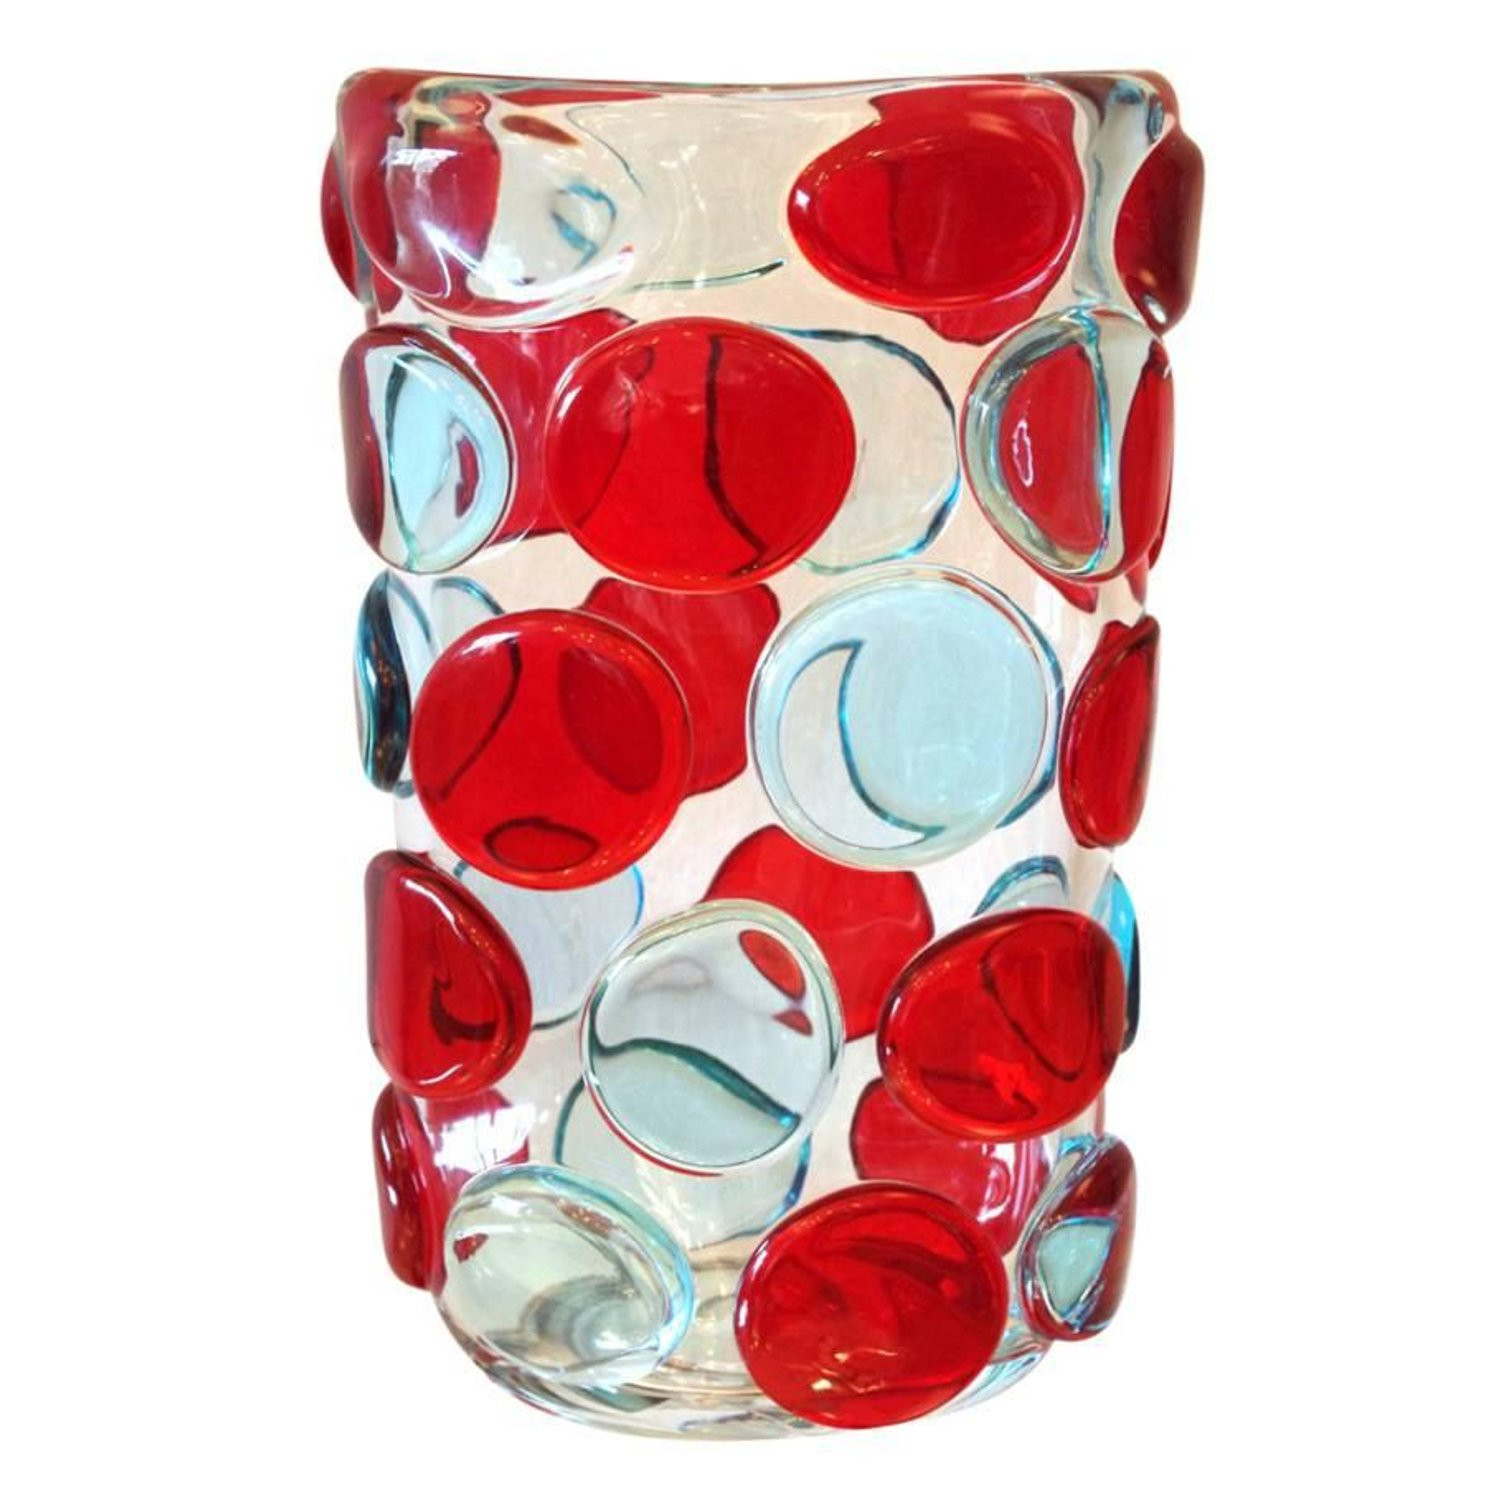 Red Blown Glass Vase Of Camozzo 1990 Modern Black Azure Blue Red Pink Yellow Murano Glass Throughout Camozzo 1990 Modern Black Azure Blue Red Pink Yellow Murano Glass Vases for Sale at 1stdibs